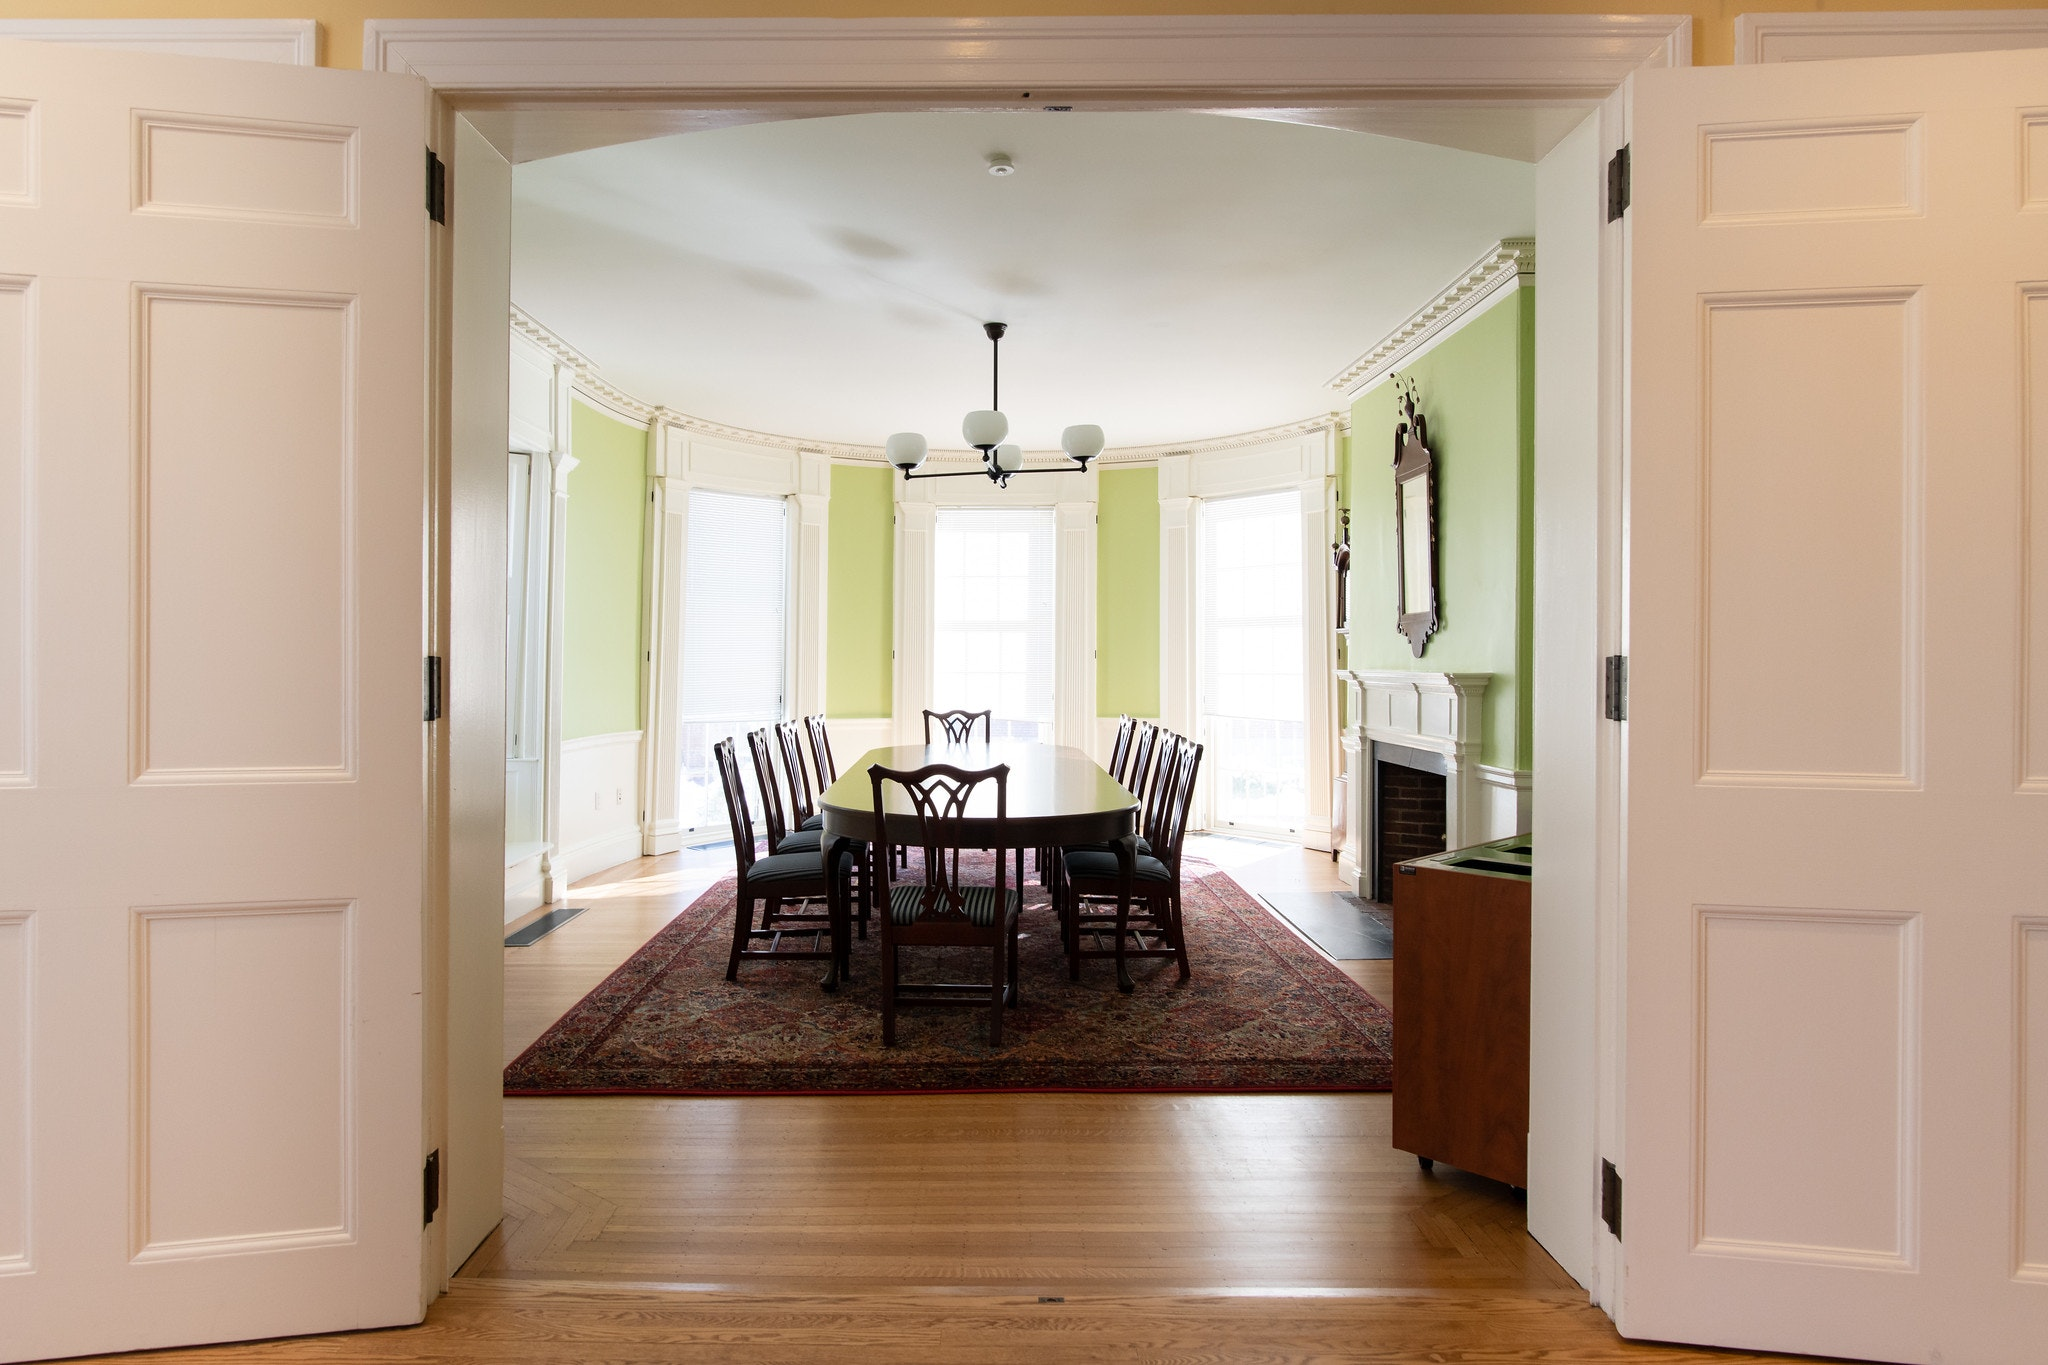 View from entrance with two white double doors. Conference table with 10 seats lined around table.